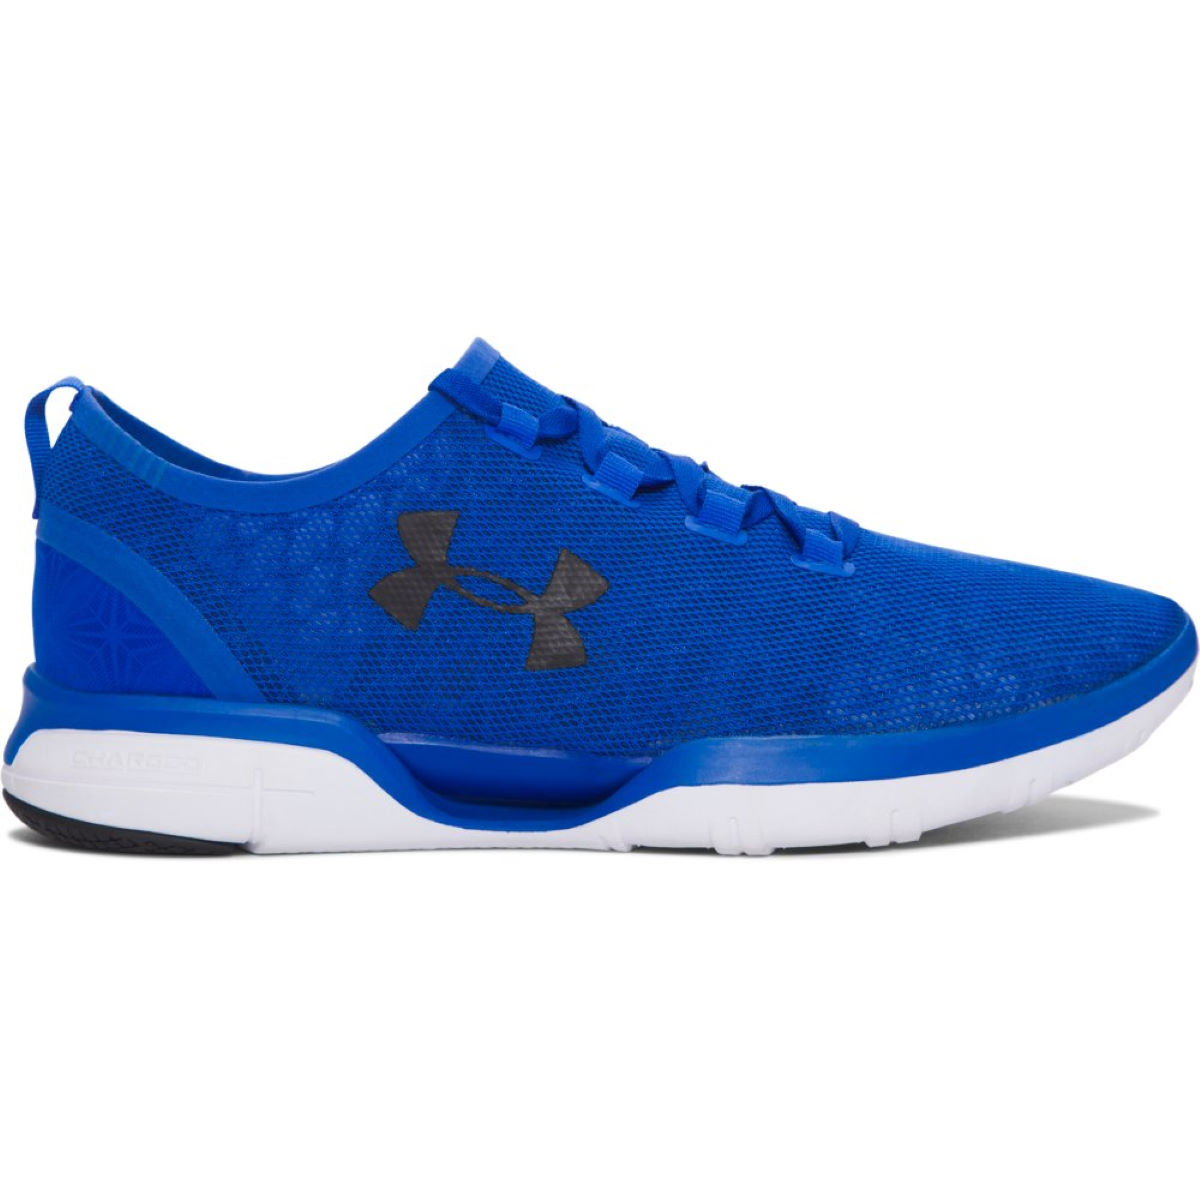 Chaussures Under Armour Charged CoolSwitch Run - 13 UK